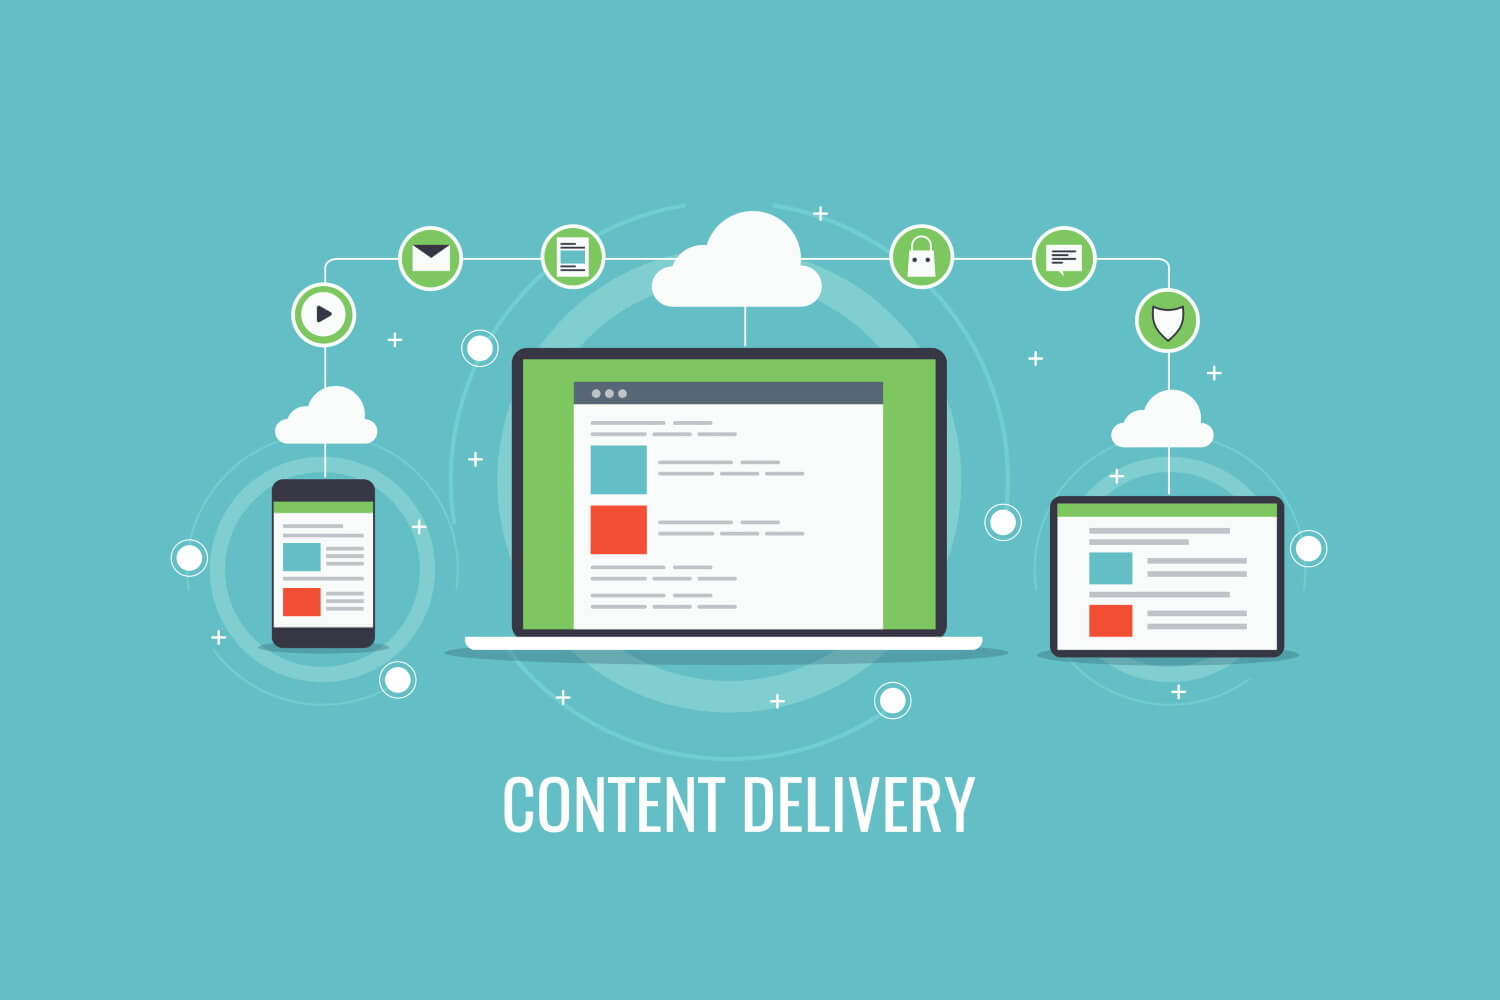 Why use a Content Delivery Network (CDN)